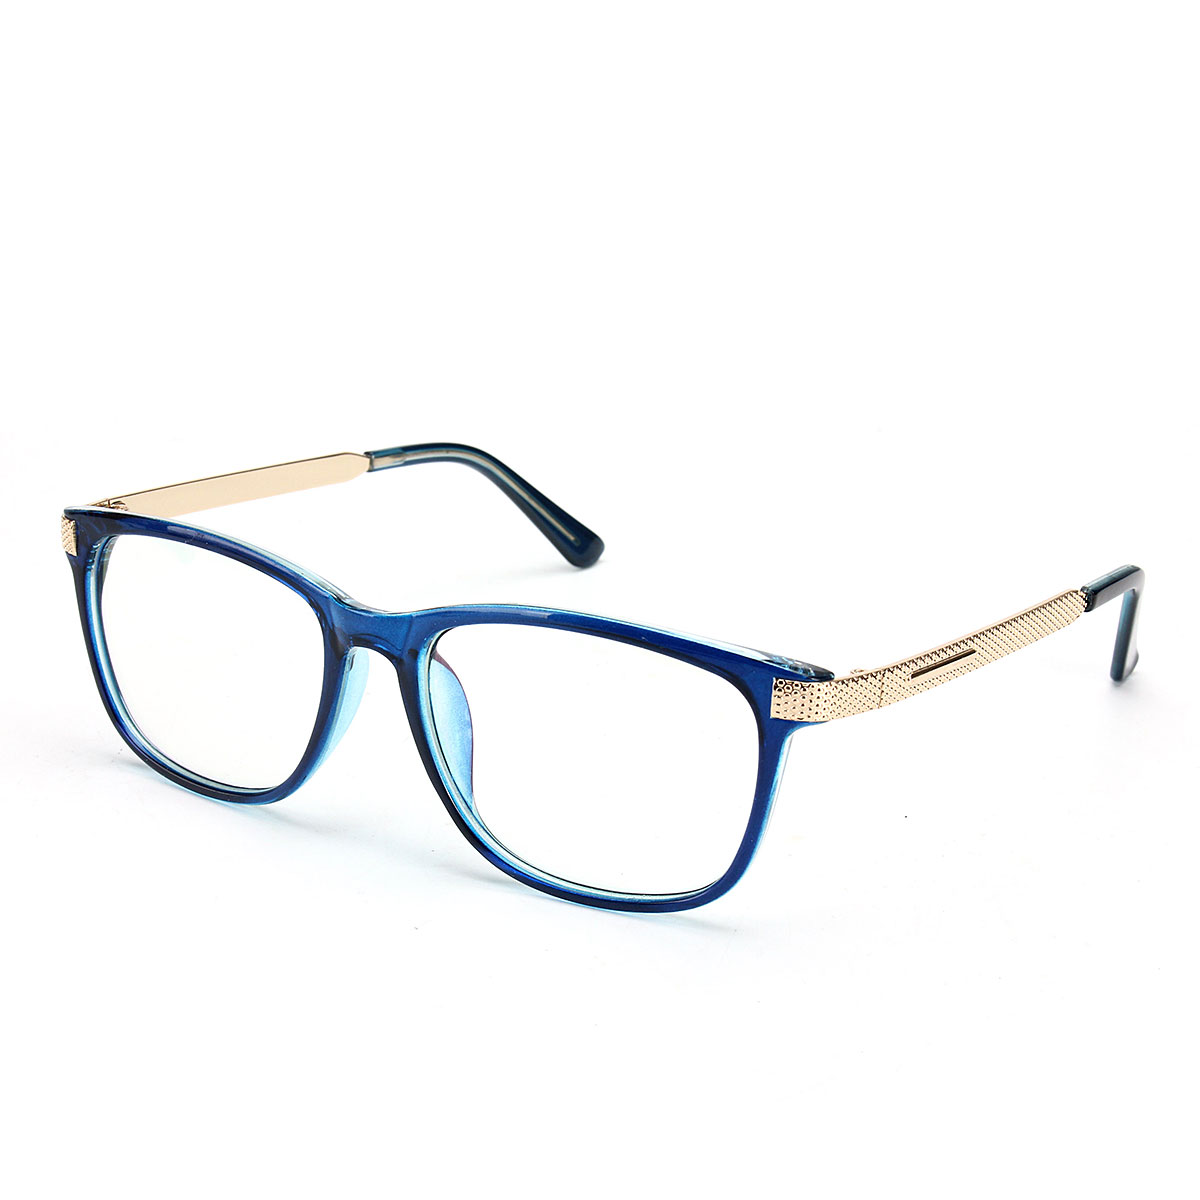 Unisex Women Men Retro Eyeglasses Frame Full-Rim Clear Lens Metal Plain Glasses